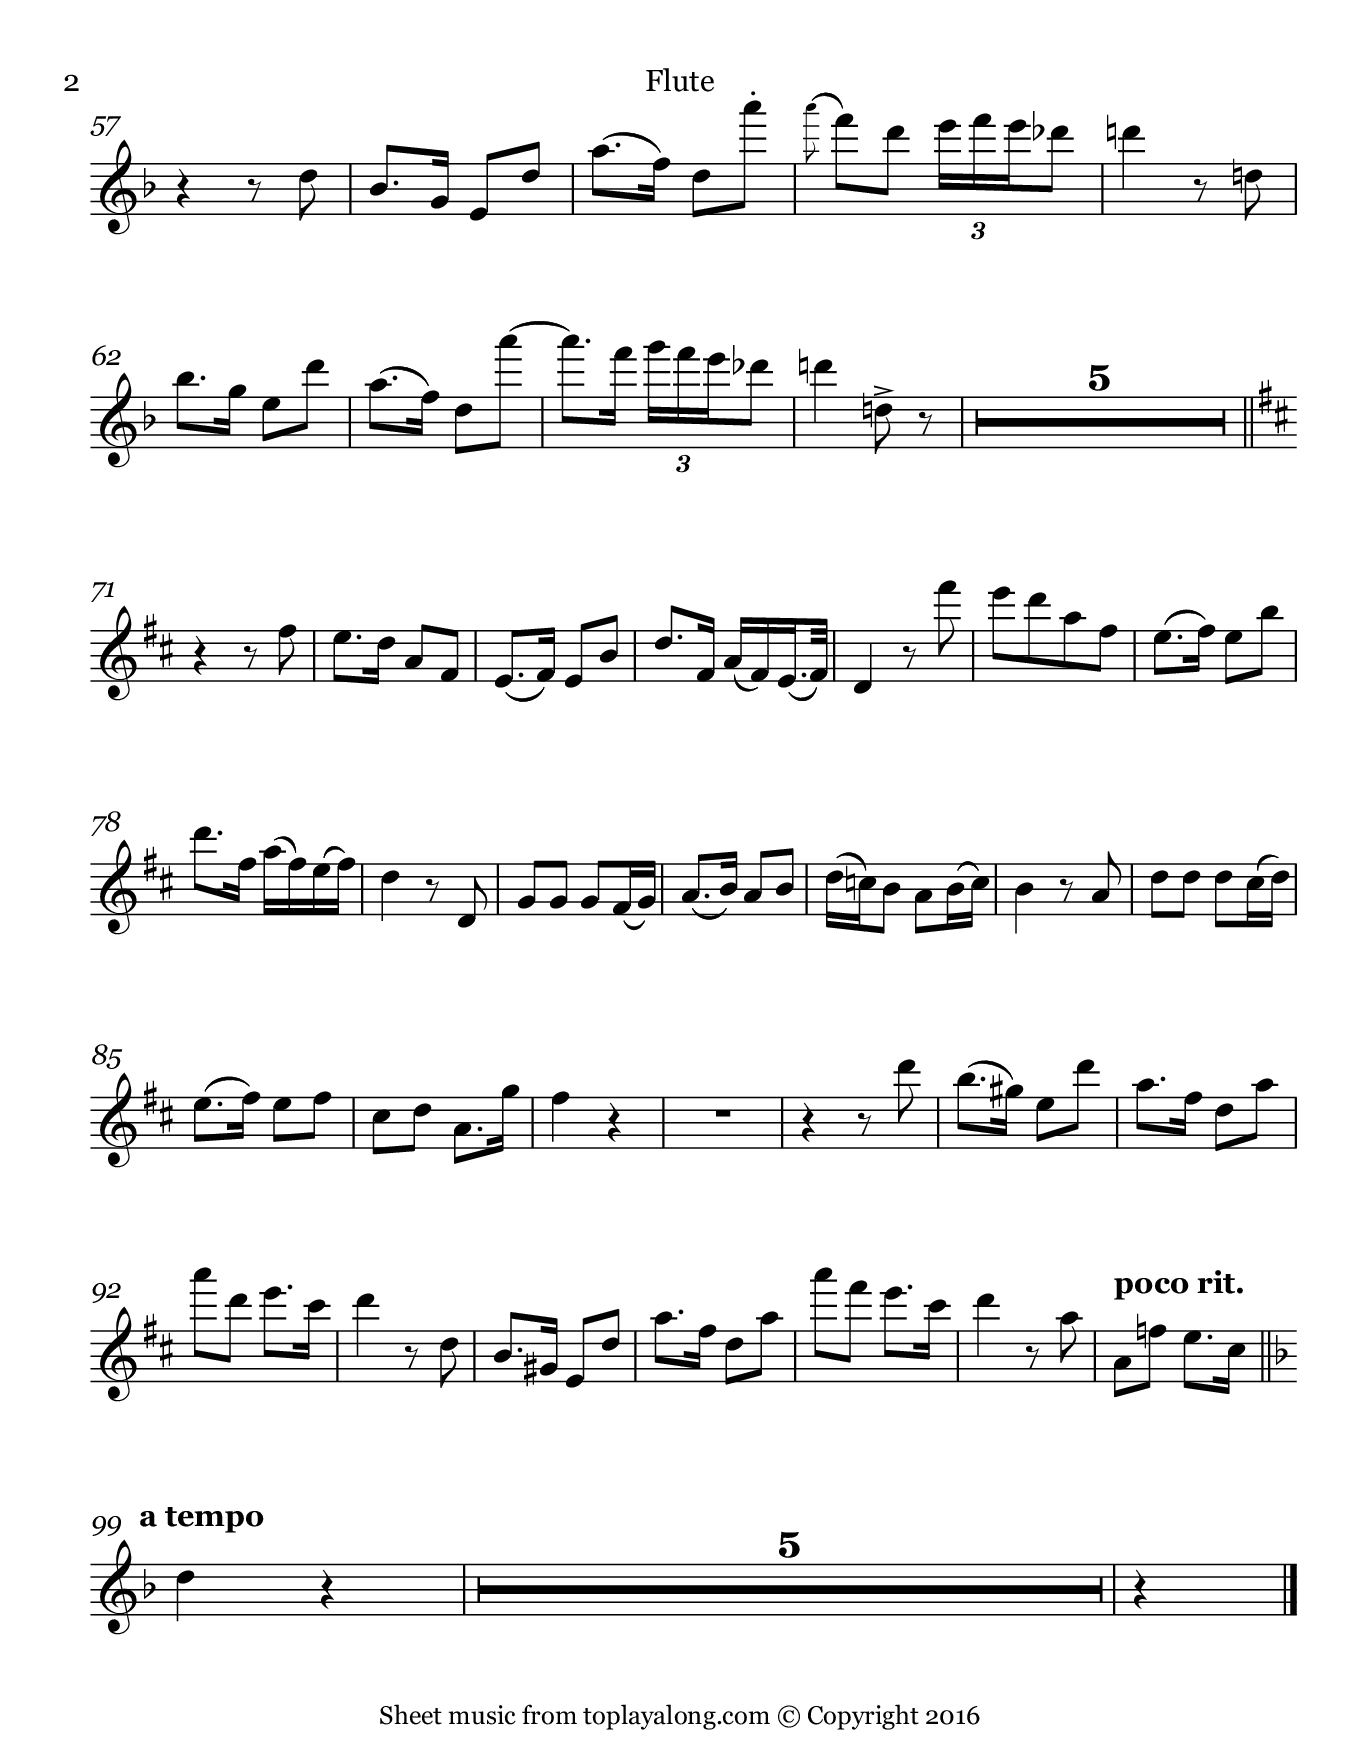 Gute Nacht from Winterreise by Schubert. Sheet music for Flute, page 2.